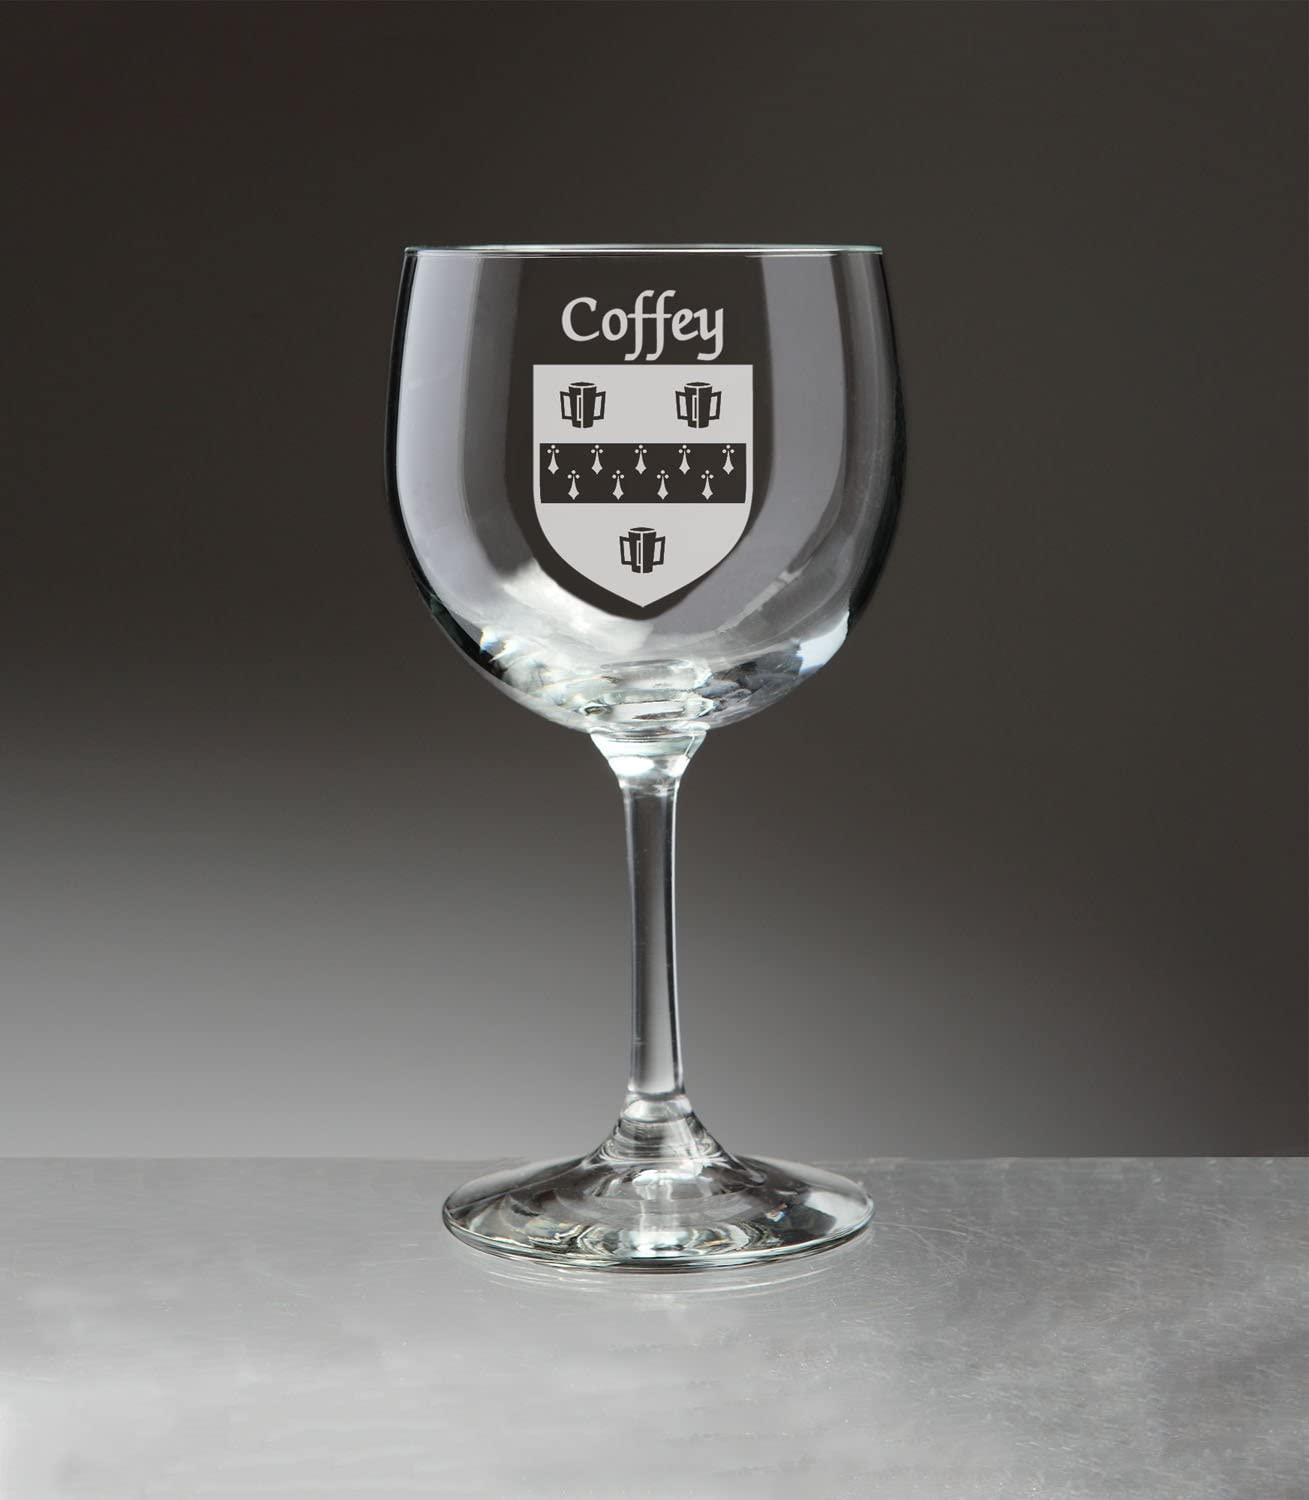 Coffey Irish Coat of Arms Ranking integrated 1st place Red Tampa Mall Wine Glasses Etch - Sand 4 Set